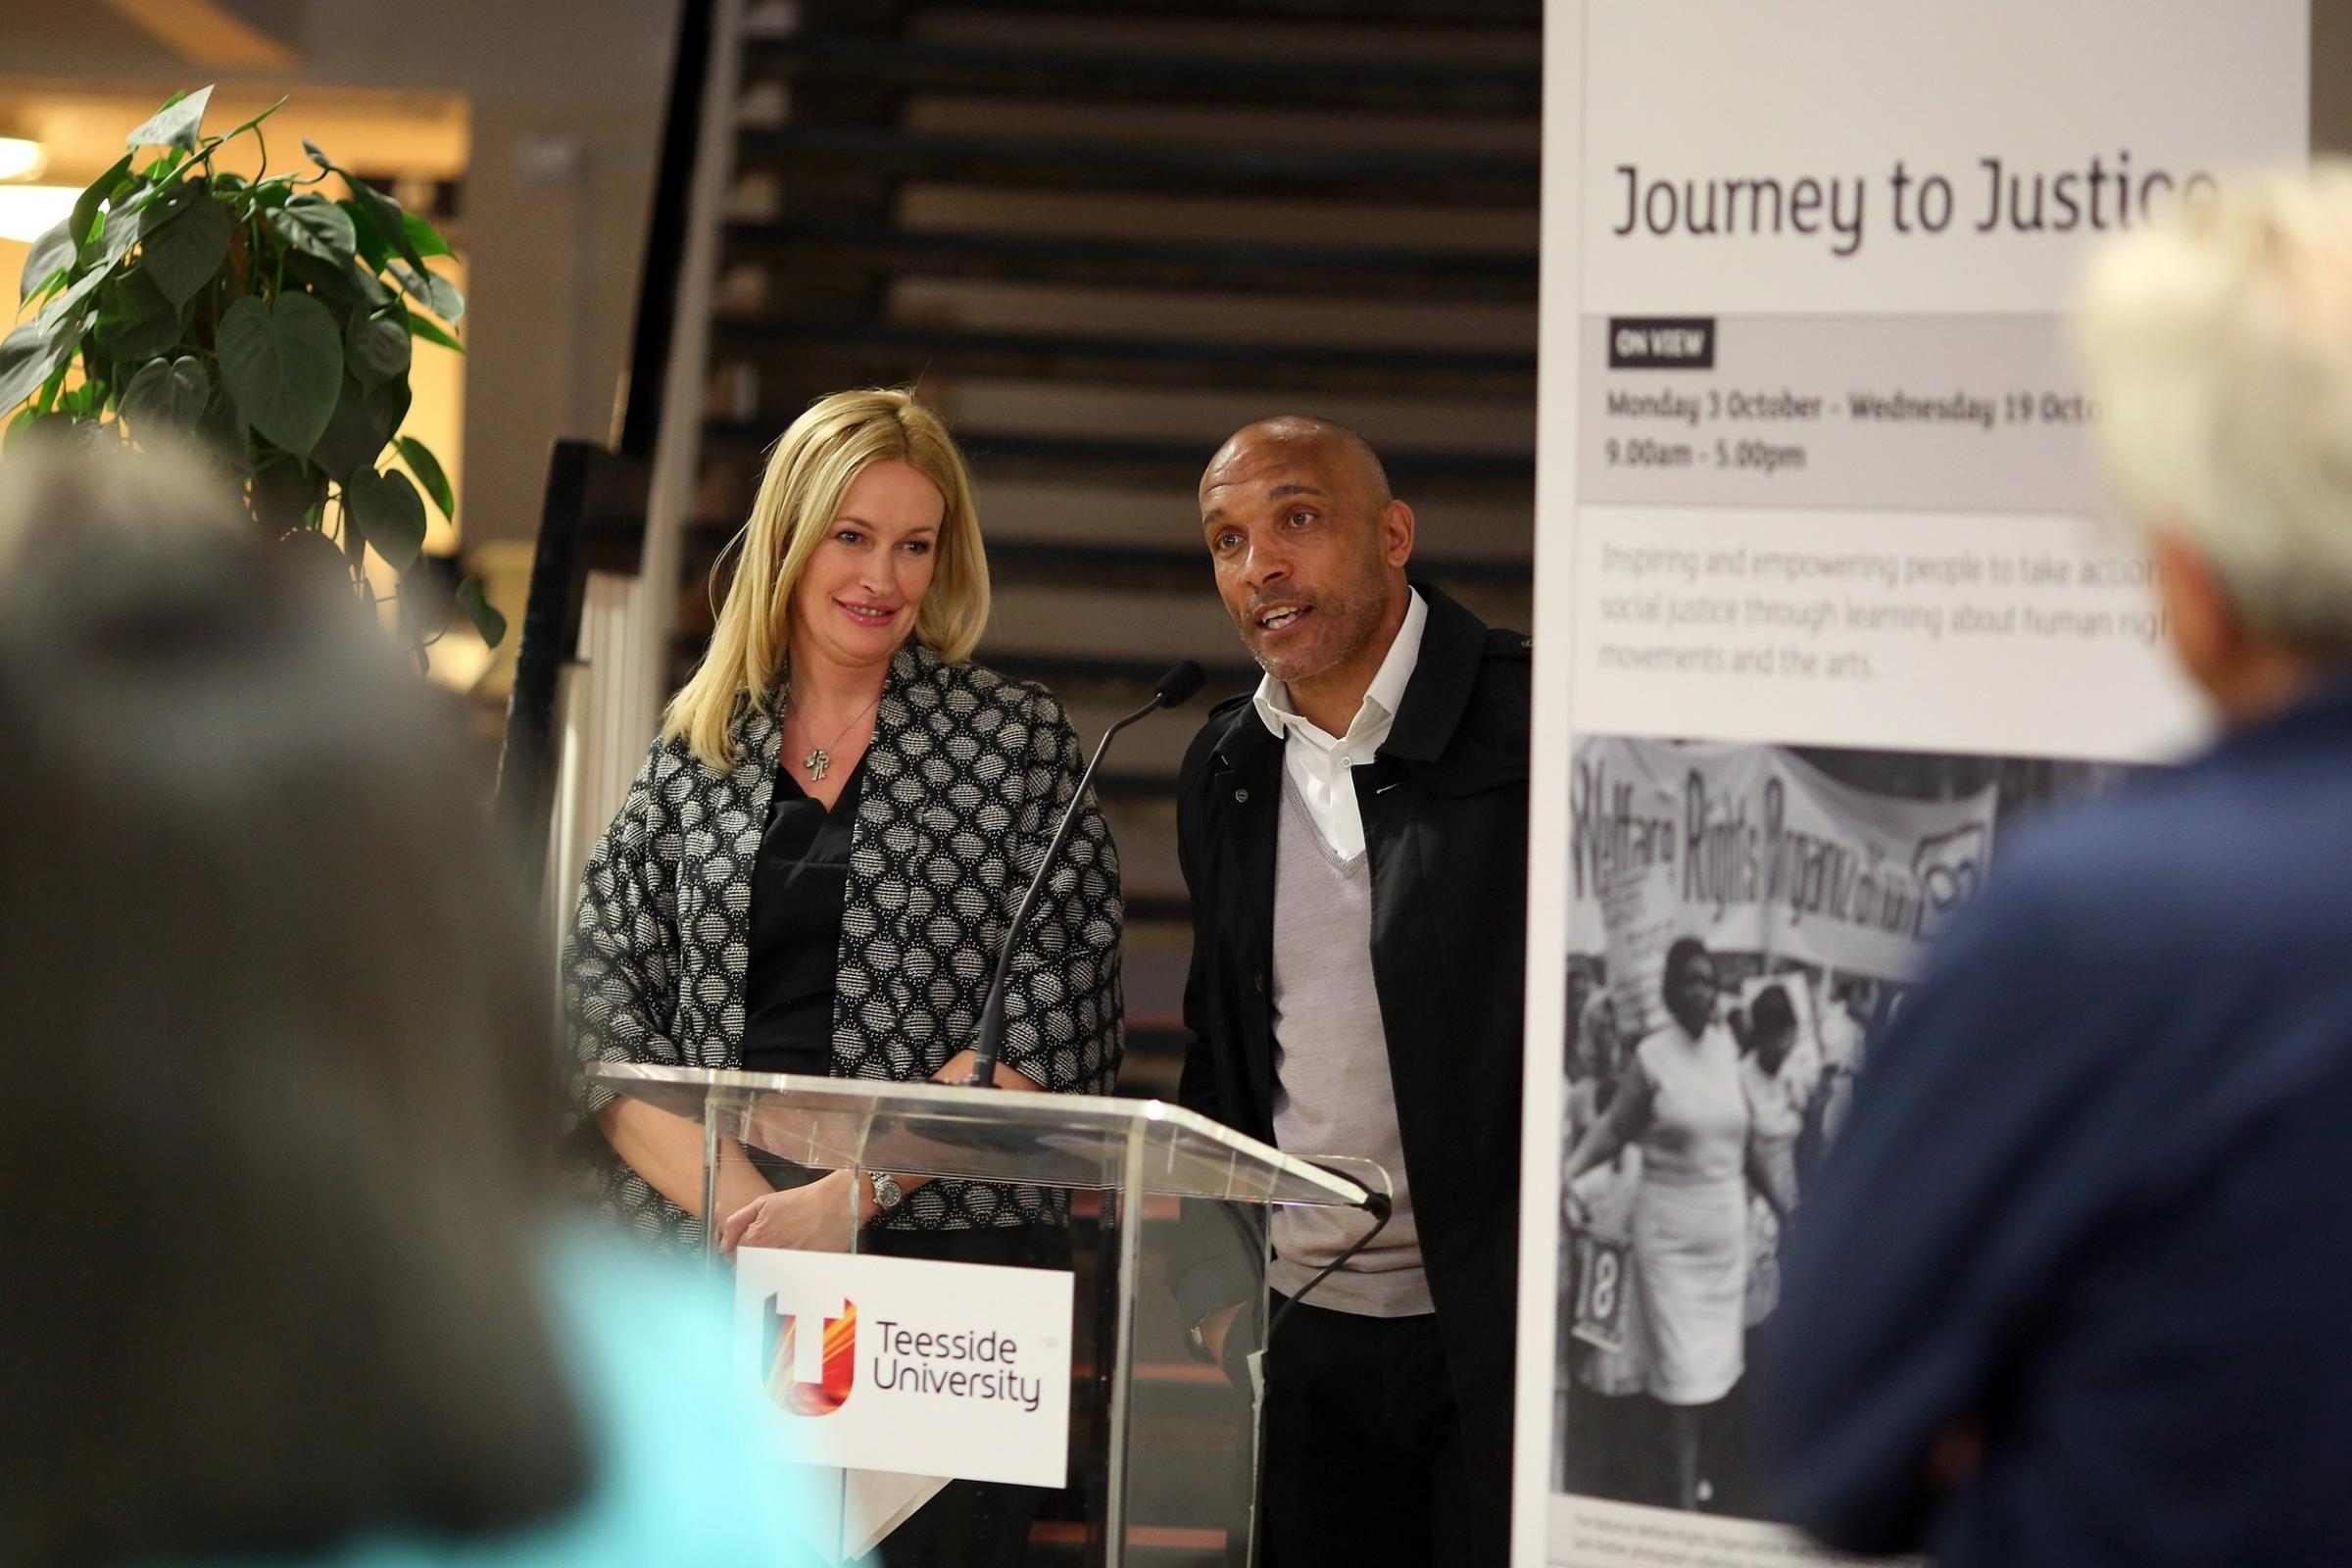 RIGHTS: Ex-Boro star Curtis Fleming and his wife Lucie at Teesside University's Journey to Justice exhibition. Picture: DAVE CHARNLEY